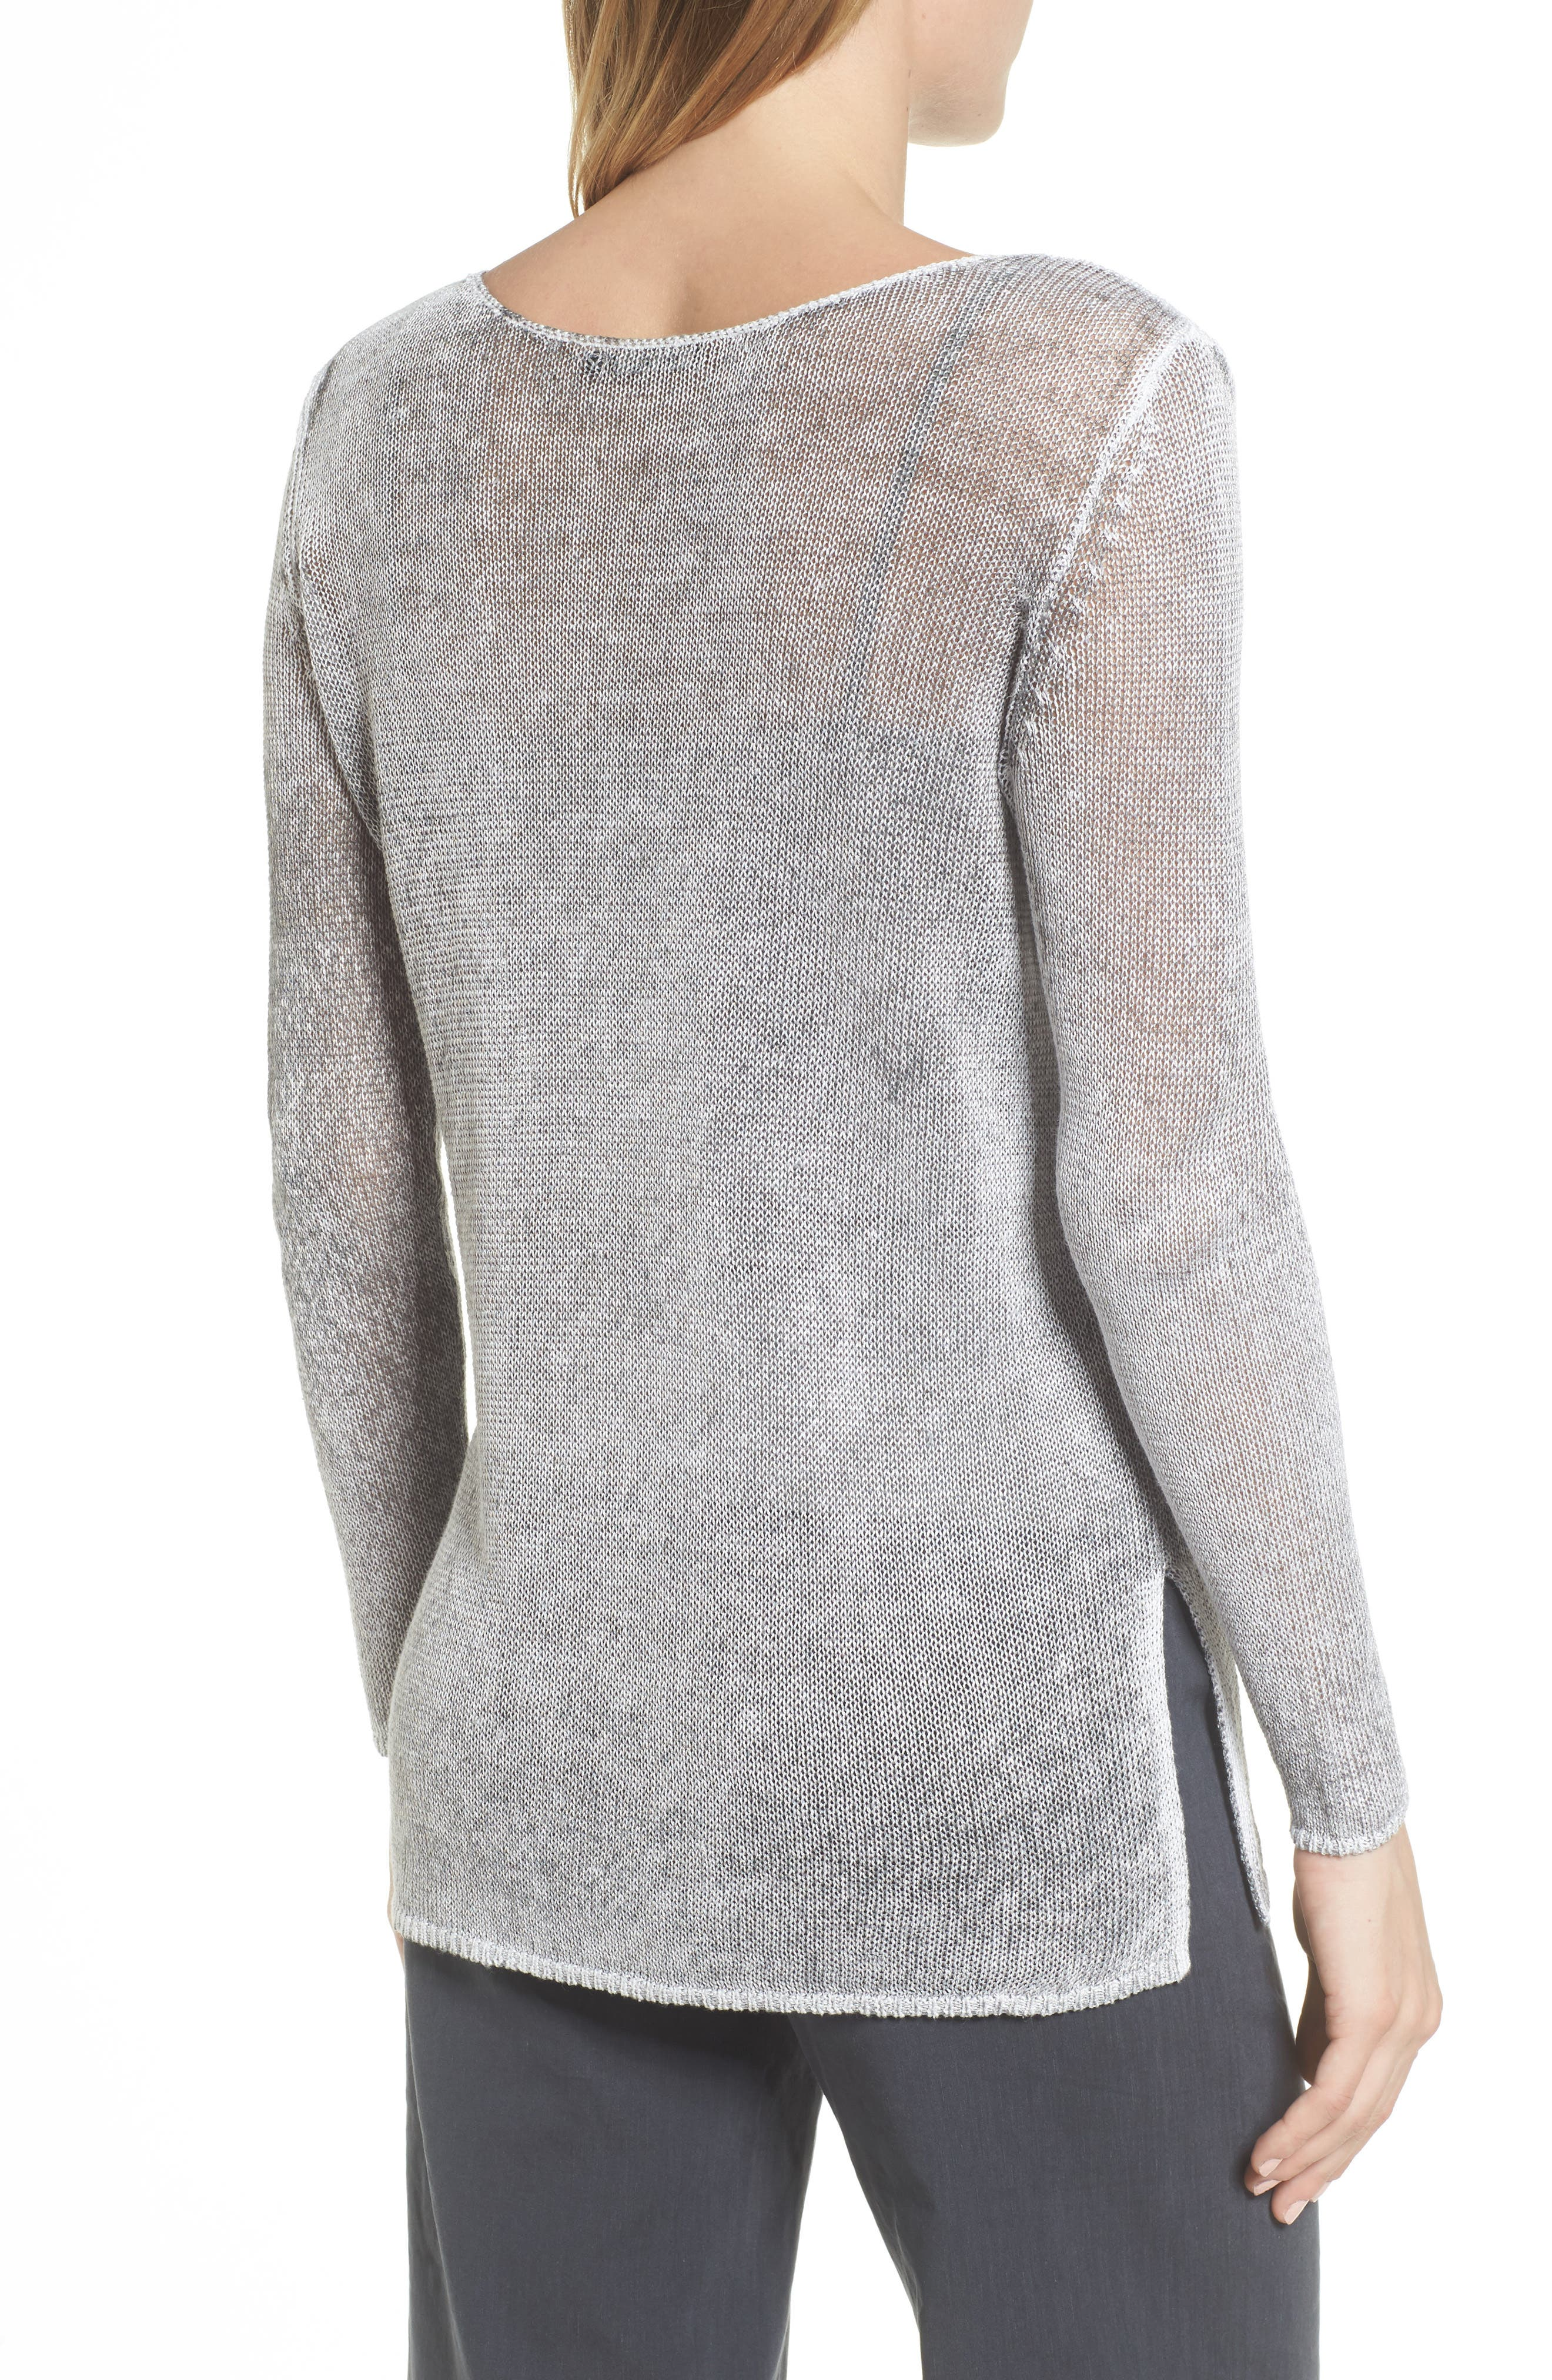 NIC + ZOE Poolside Linen Blend Sweater,                             Alternate thumbnail 2, color,                             050